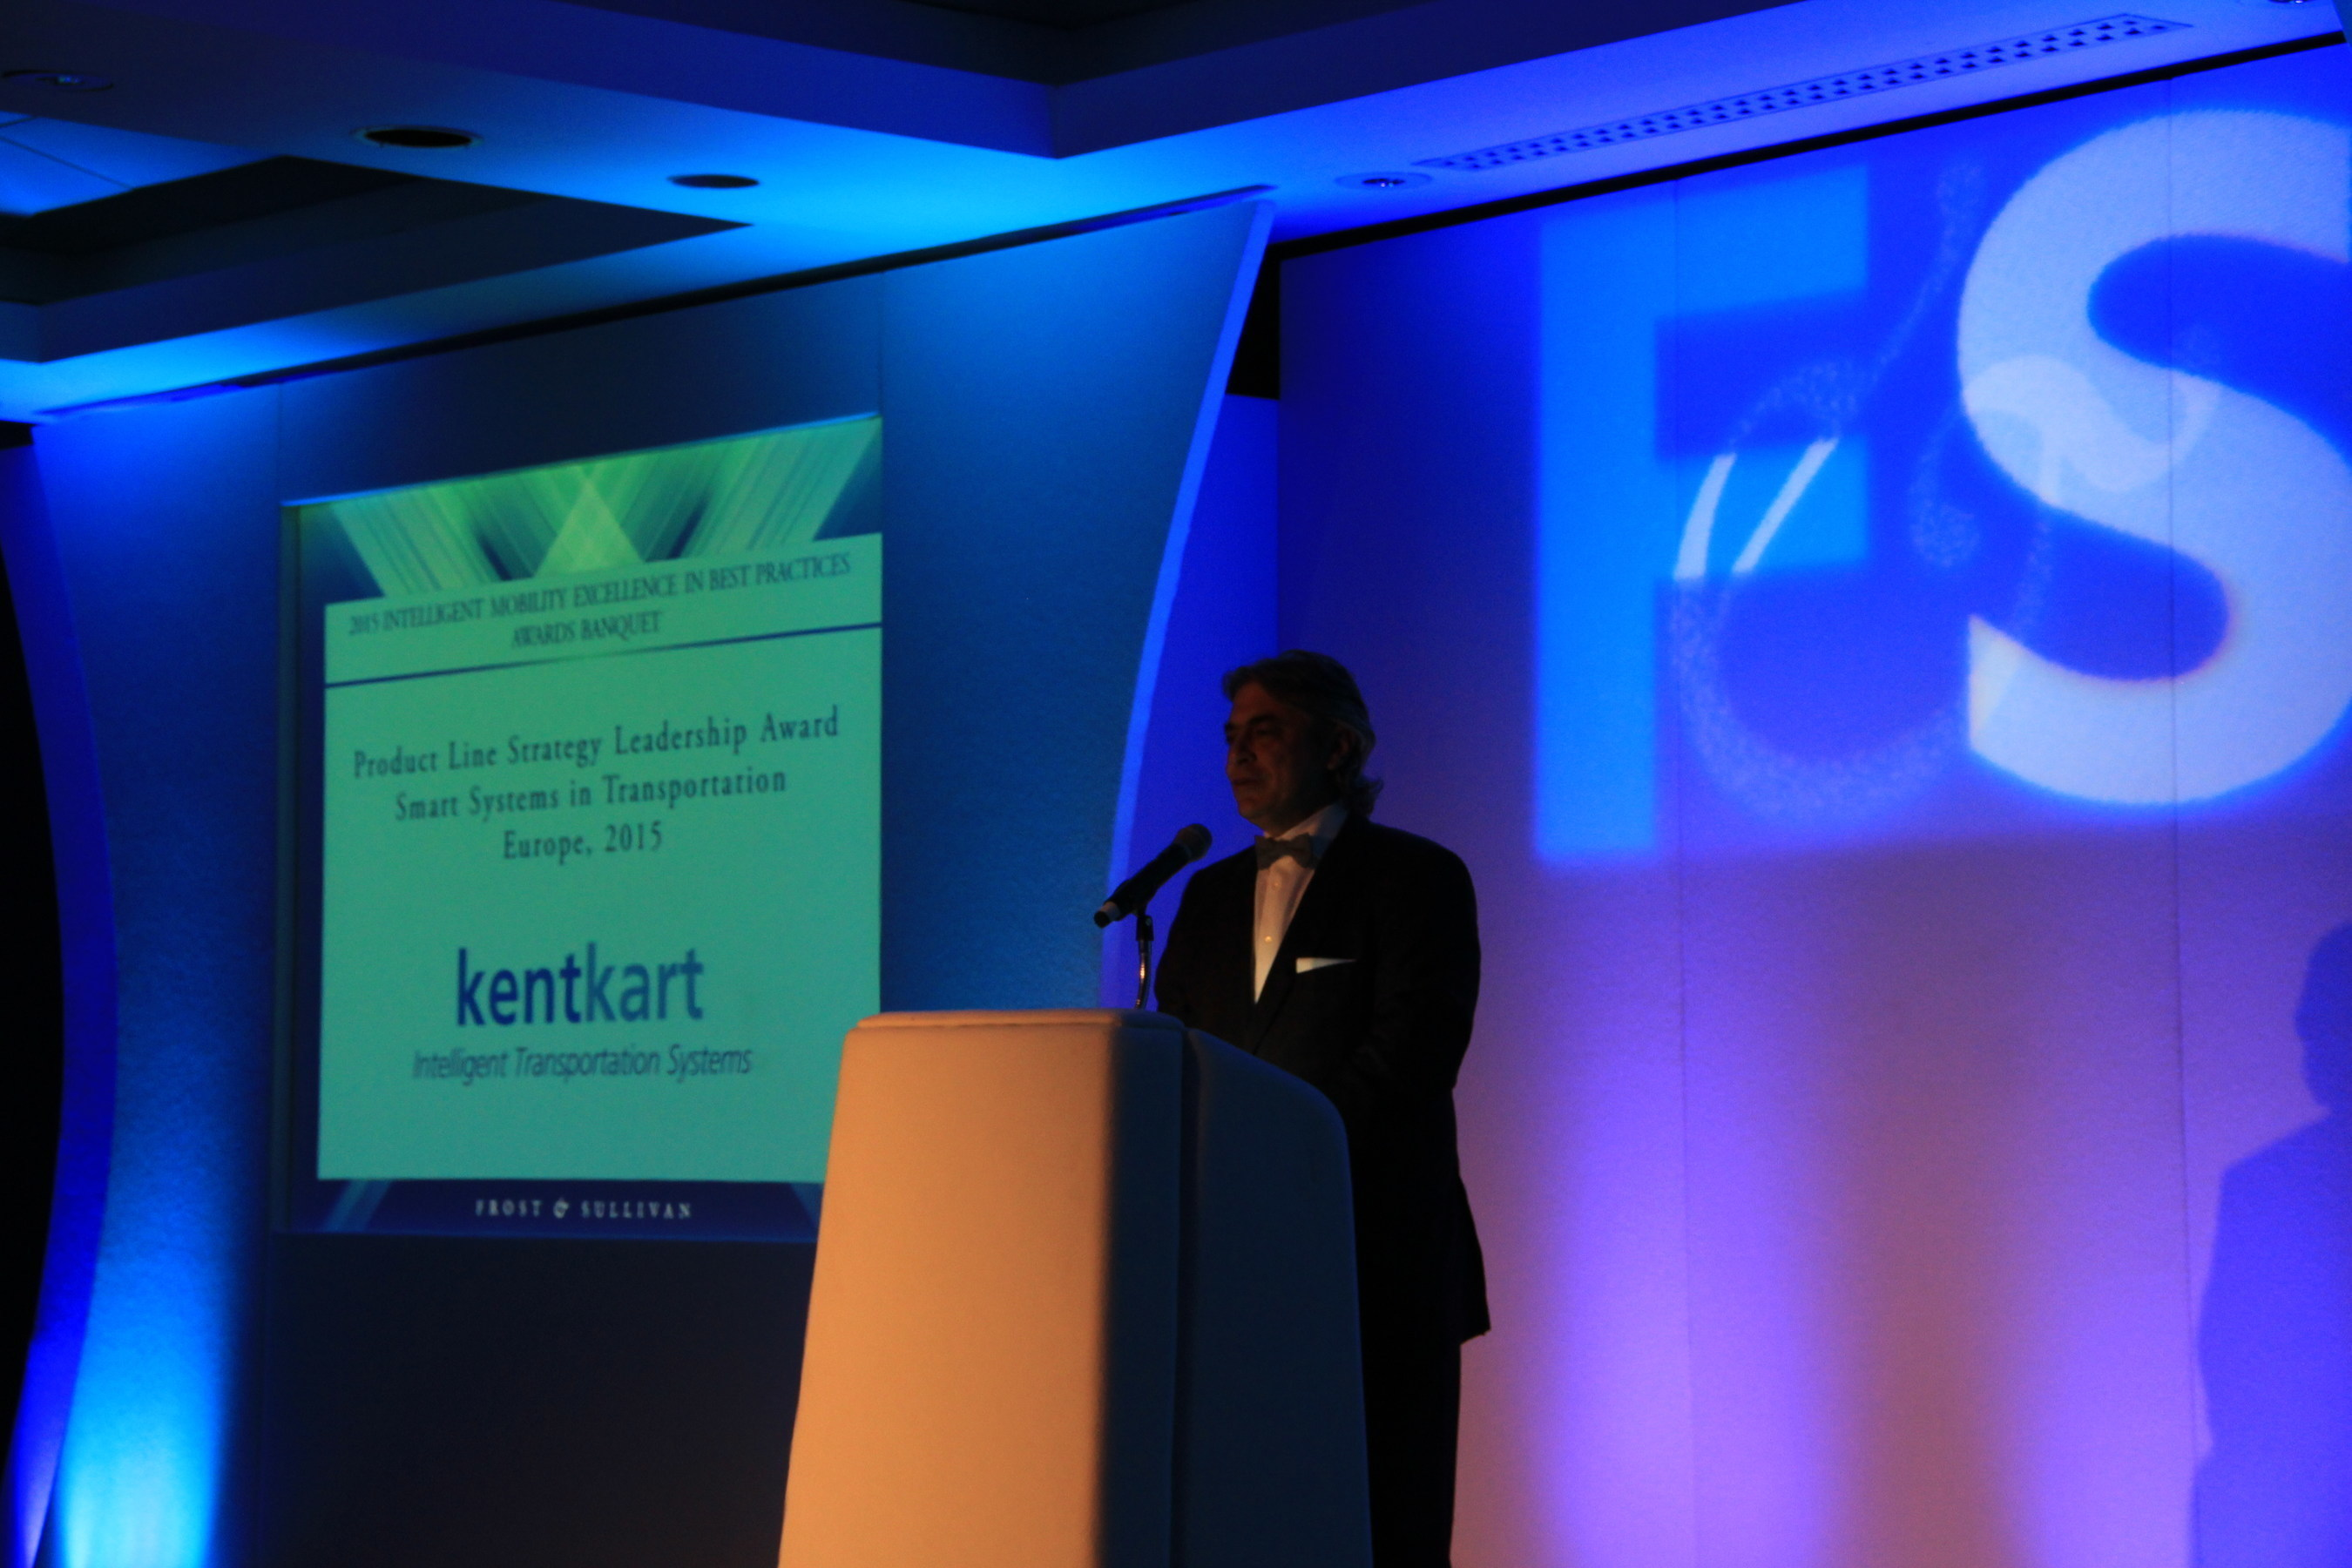 Frost & Sullivan Applauds Kentkart's Technologies for Enhancing the Travel Experience with Smart